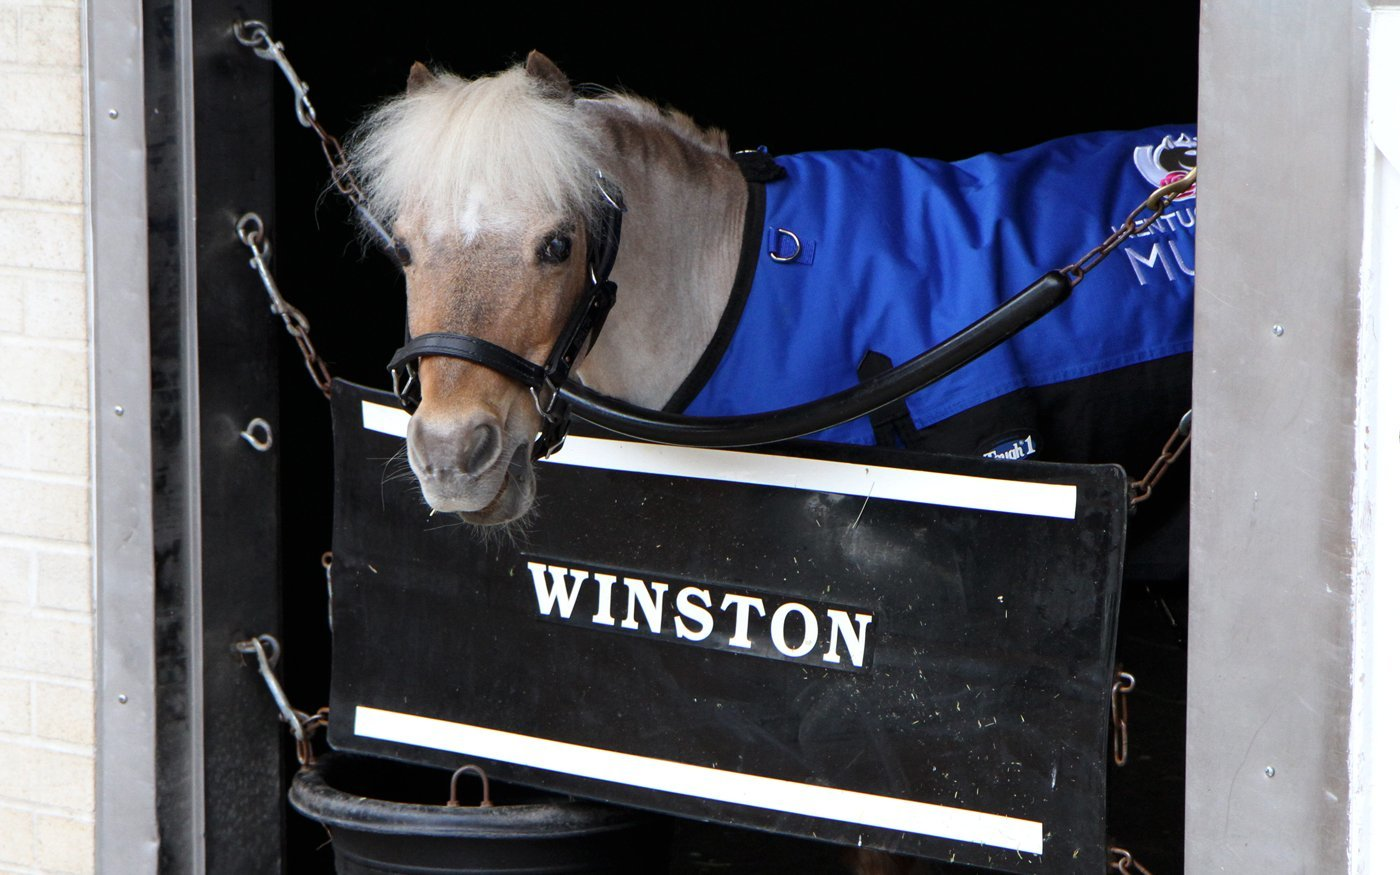 Derby Museum's miniature horse Winston retires after 22 years